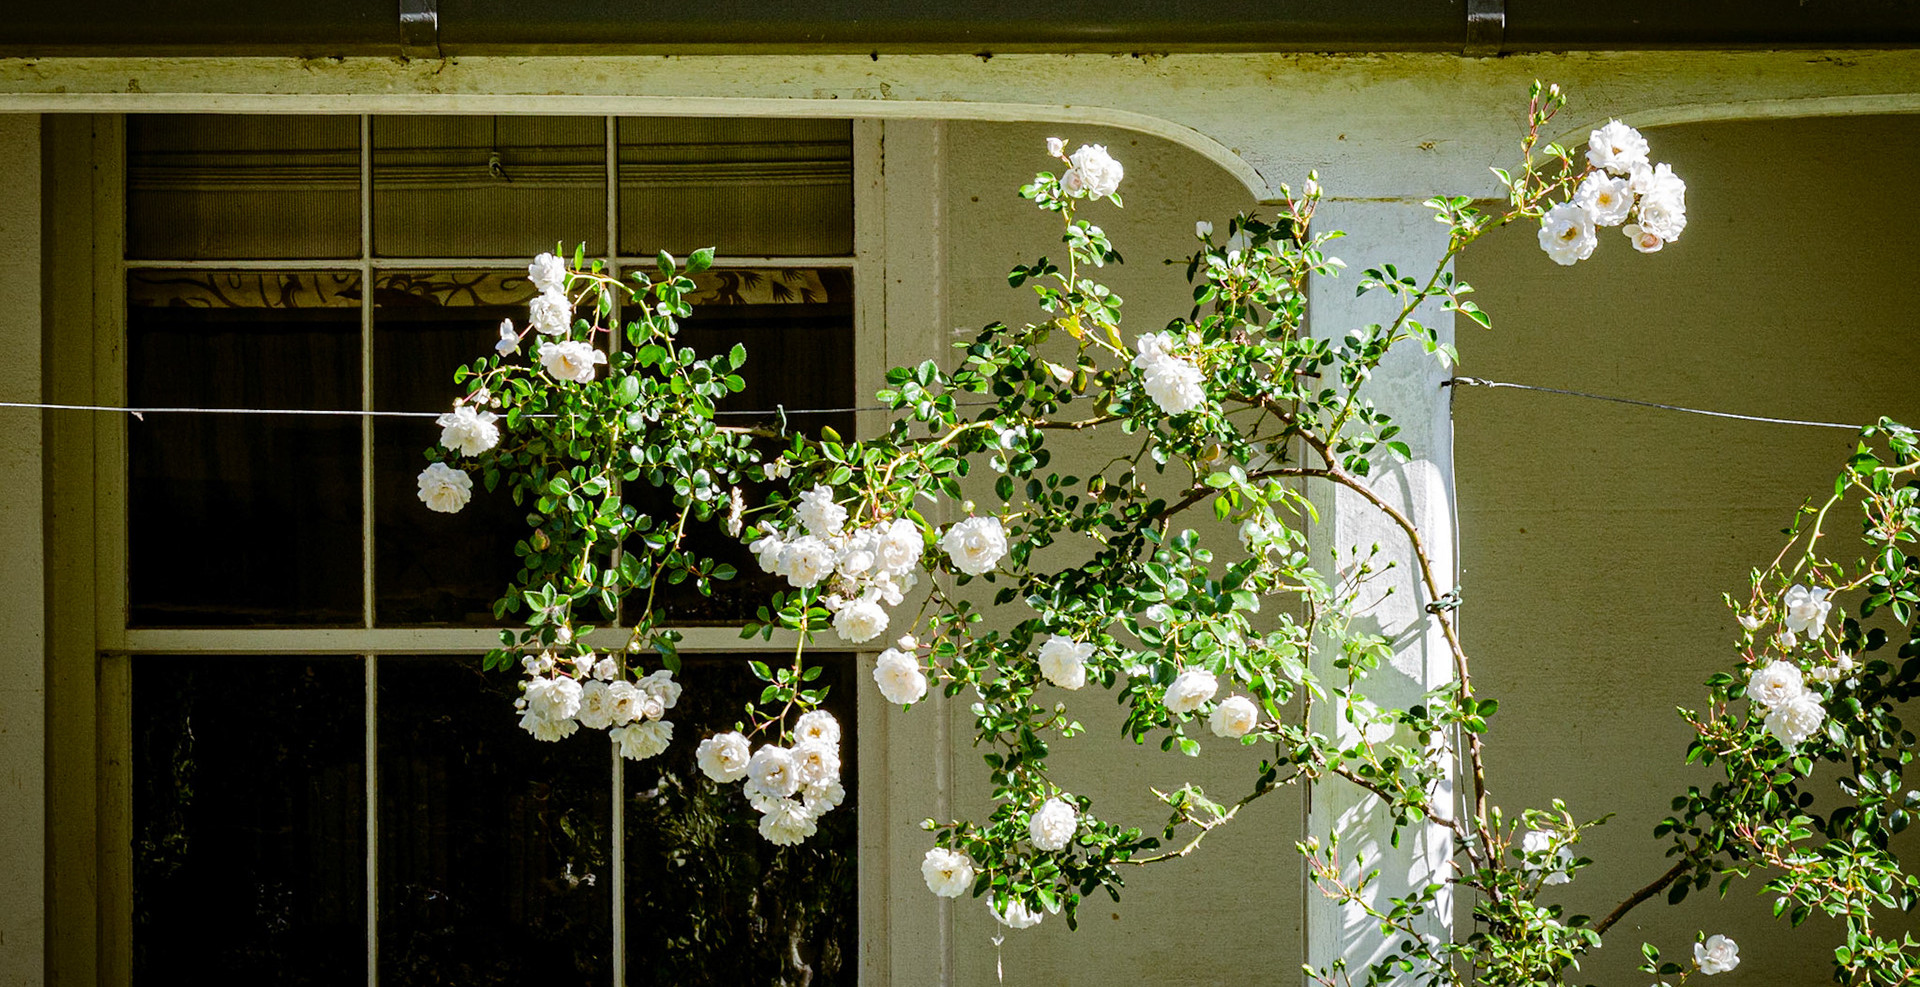 Roses on the Verandah